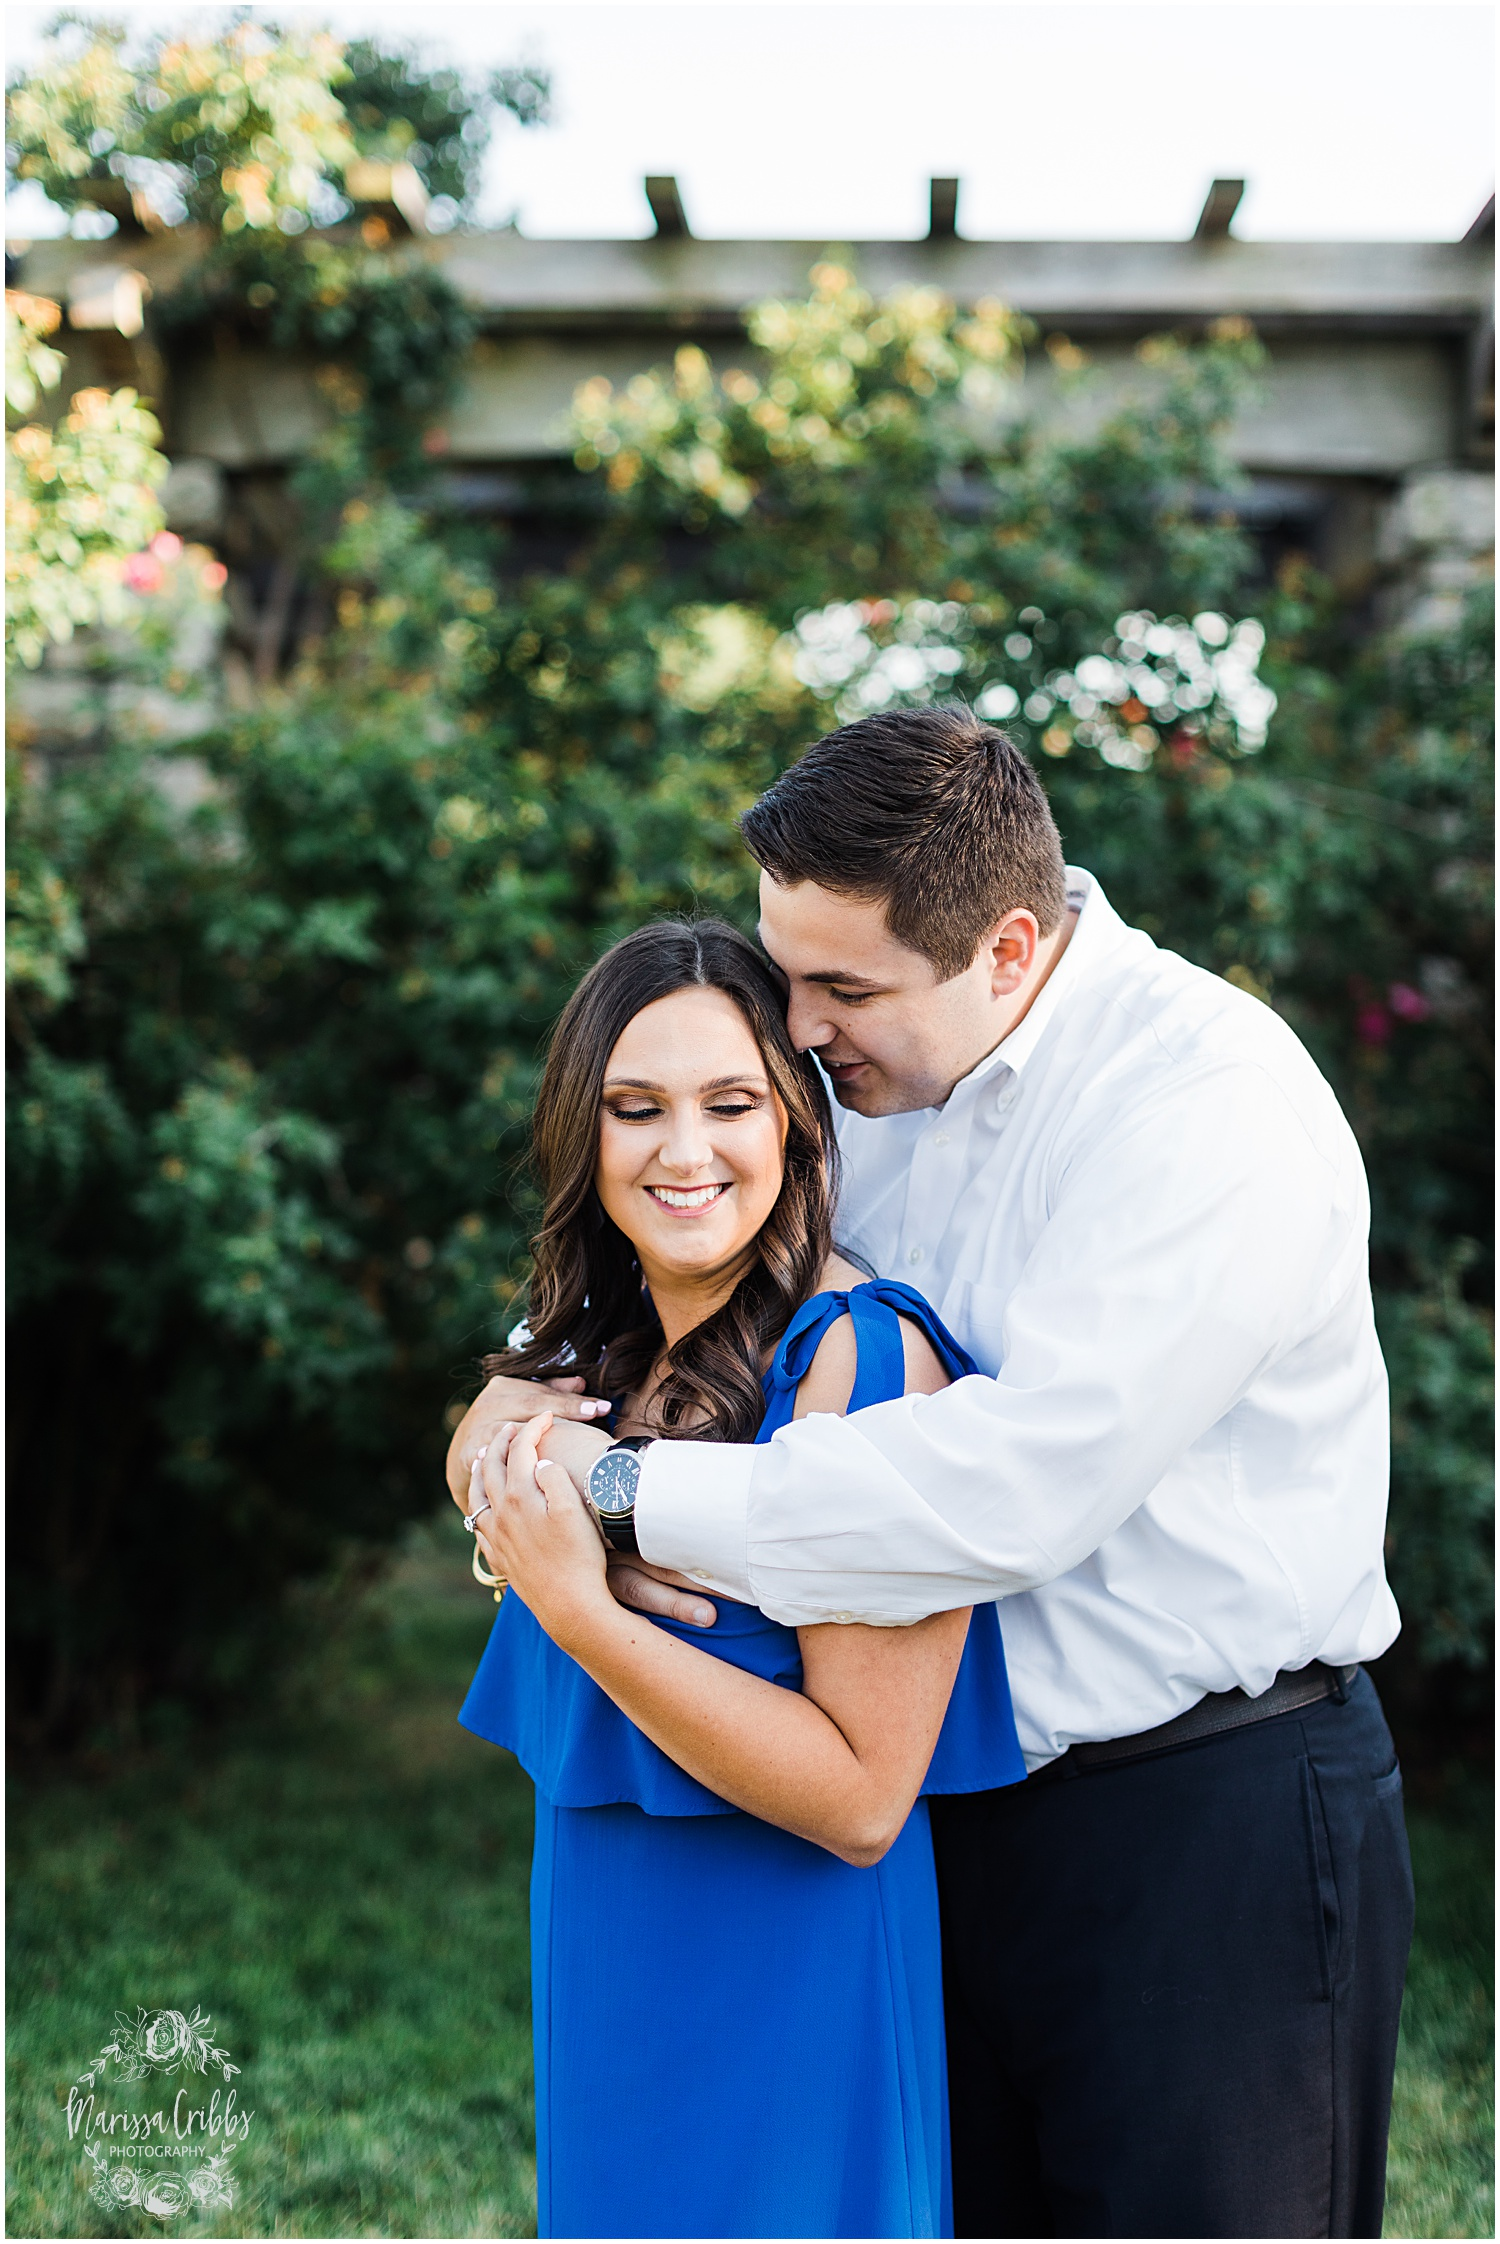 MORGAN & KEVIN ENGAGEMENT BLOG | MARISSA CRIBBS PHOTOGRAPHY_8271.jpg